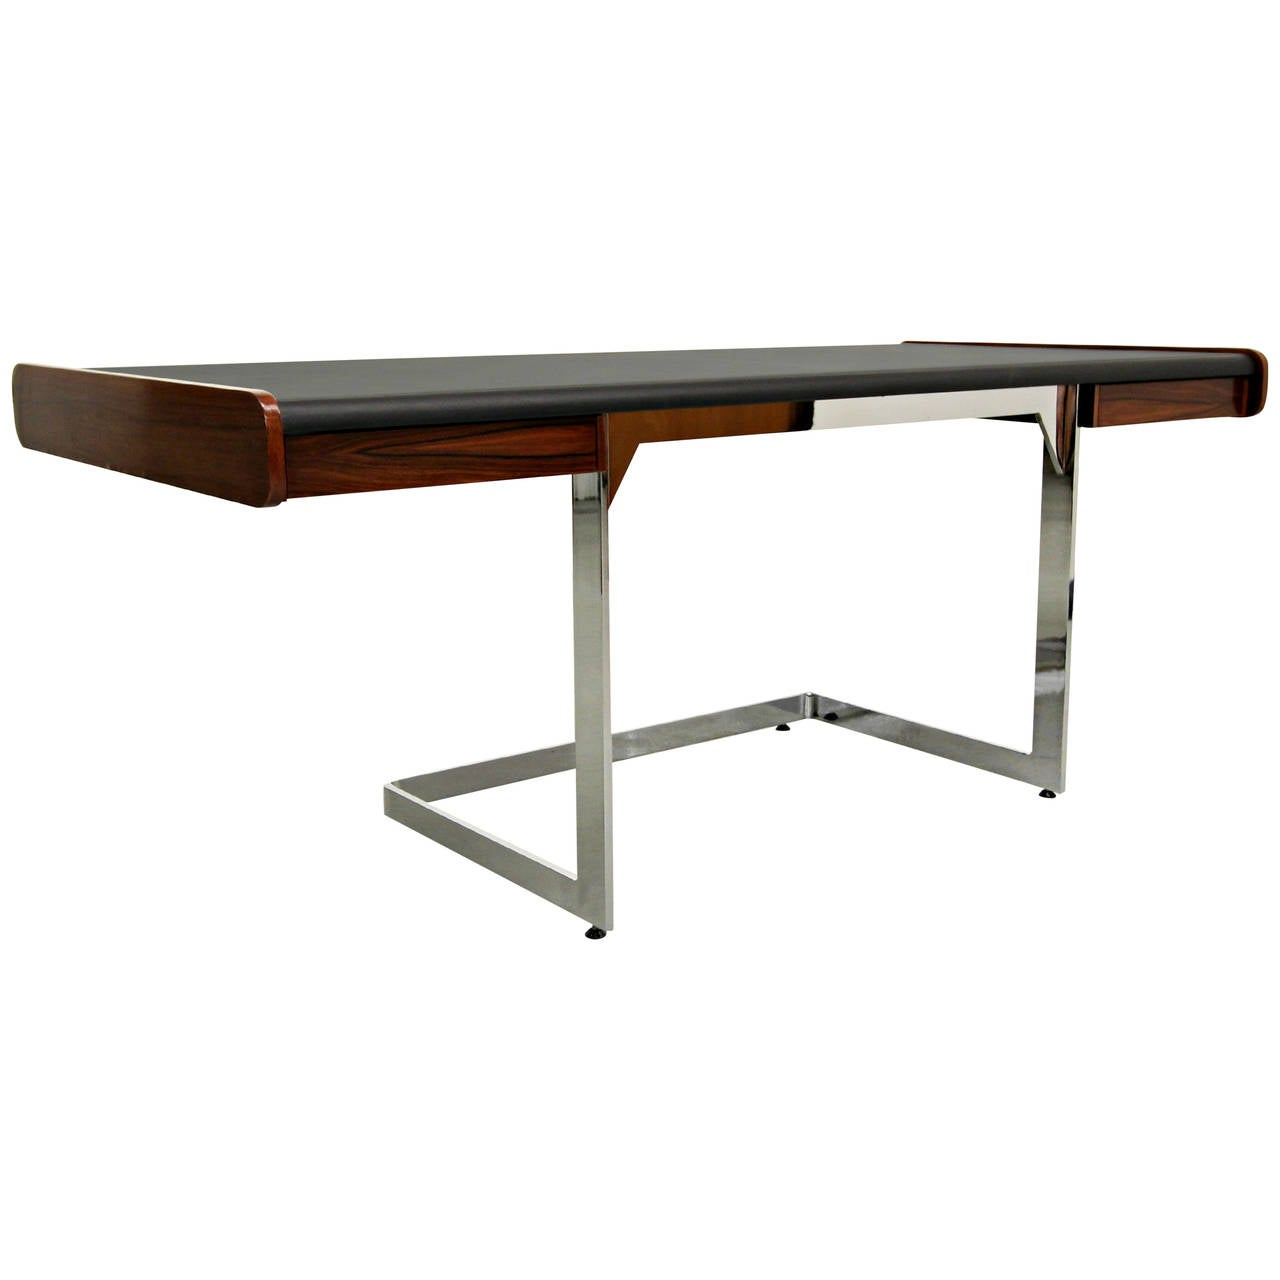 Midcentury Rosewood and Chrome Cantilever Desk by Ste-Marie & Laurent For  Sale